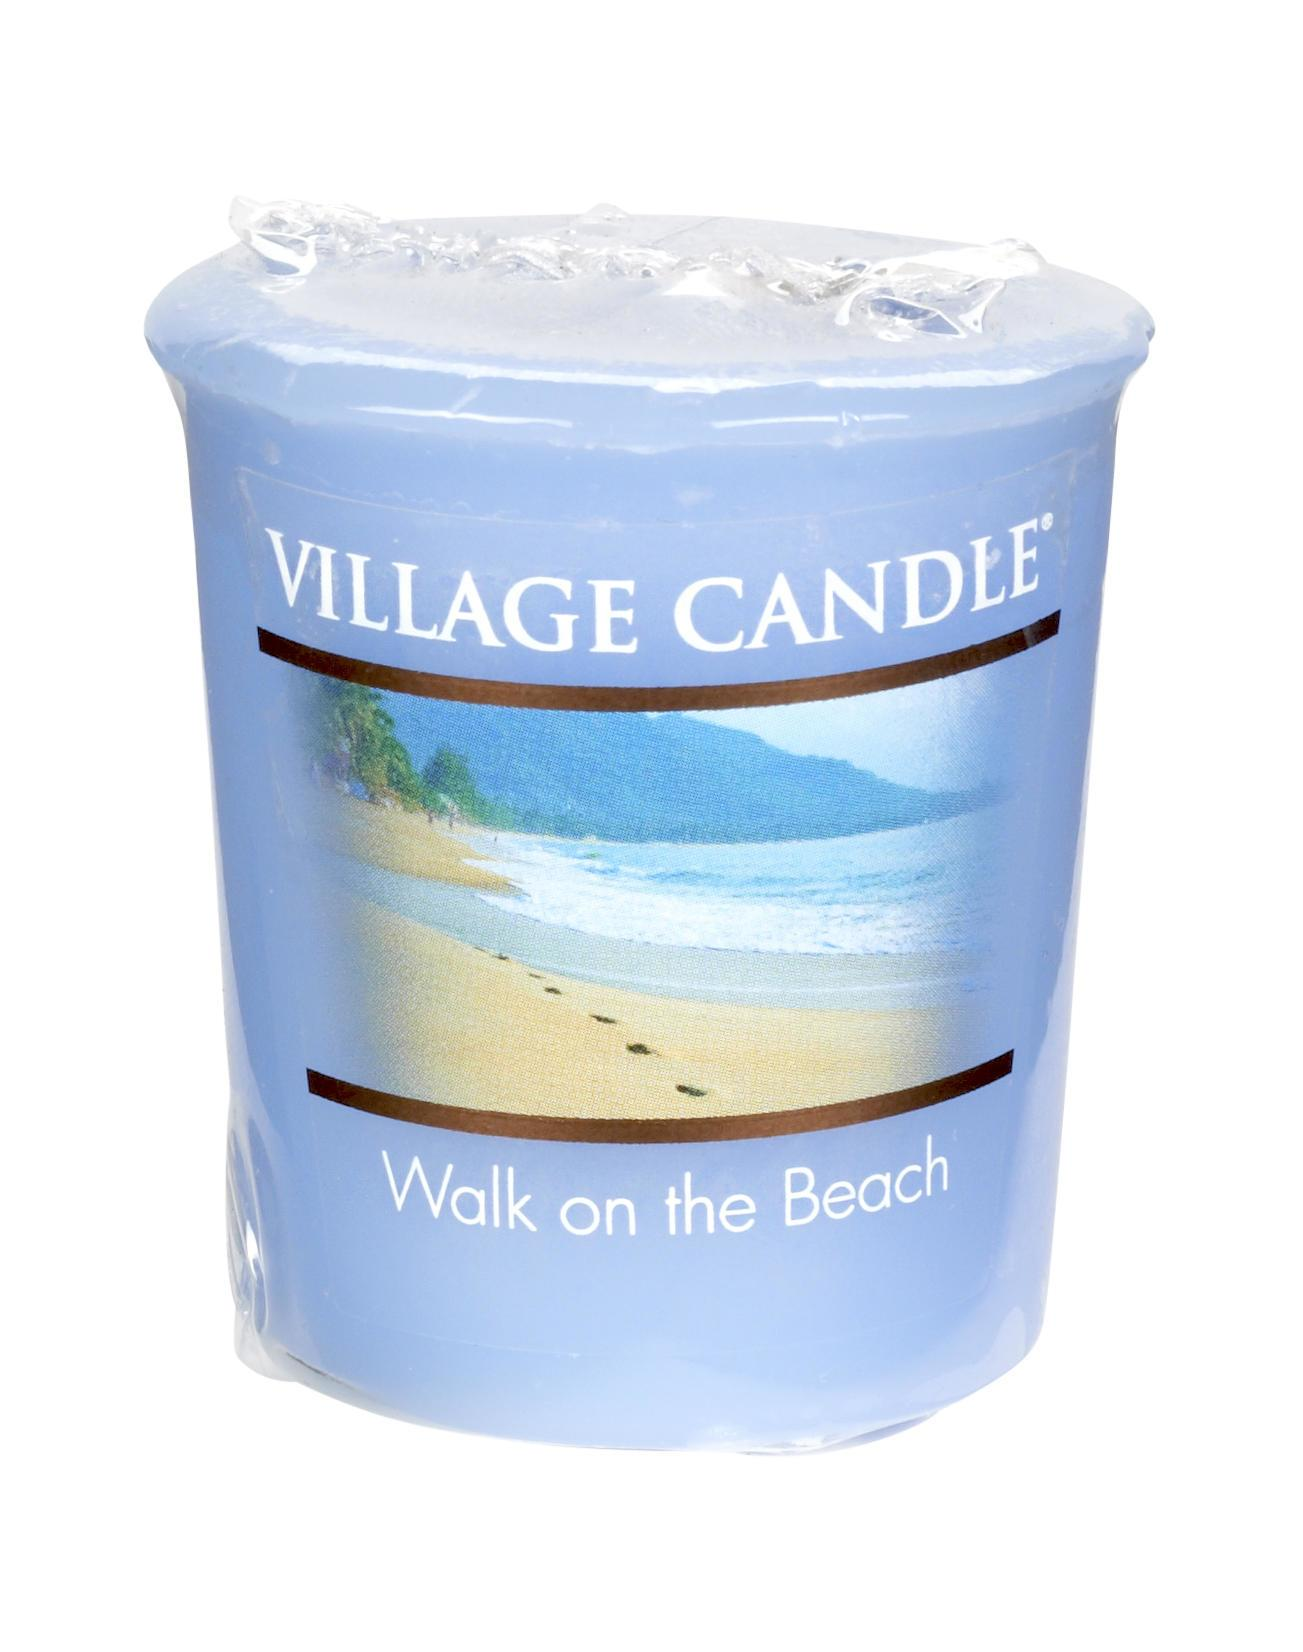 Village Candle Votivní svíčka Village Candle - Walk on the beach